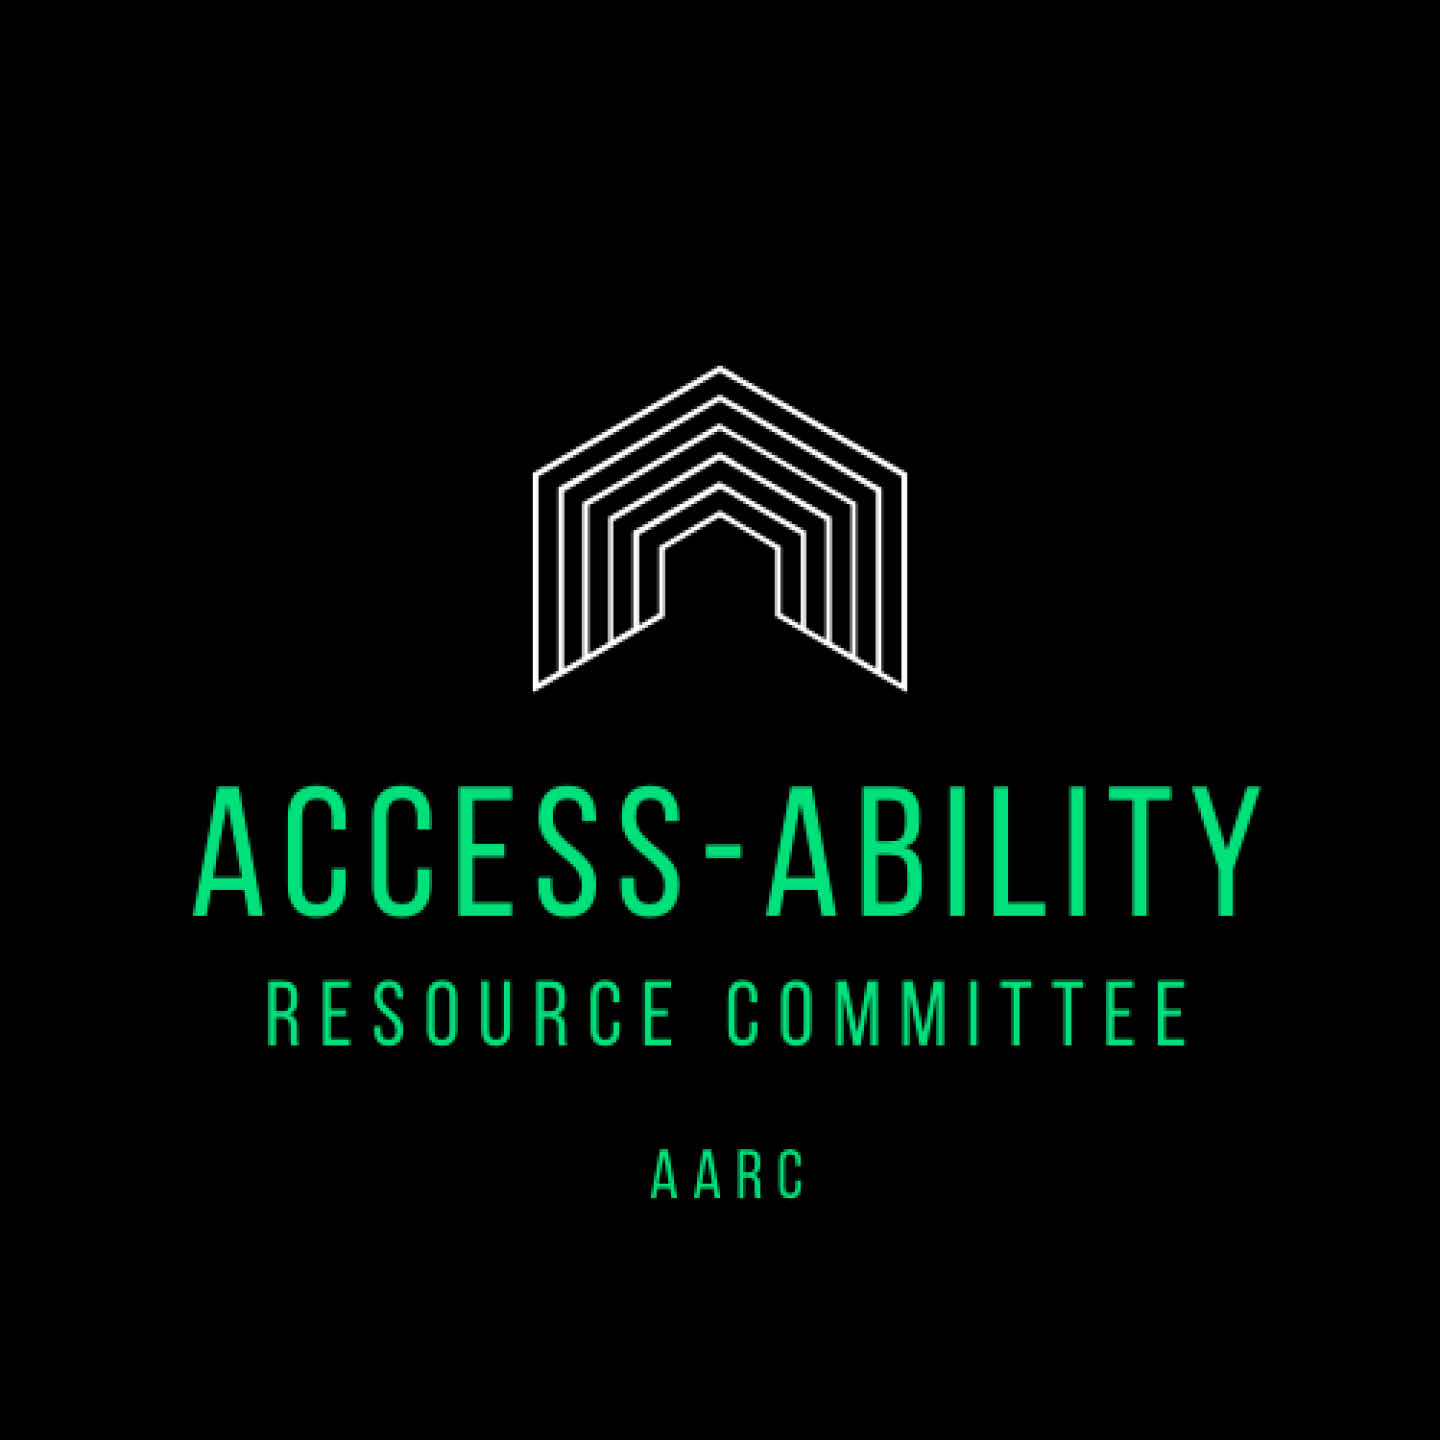 Access-Ability Resource Committee (AARC)